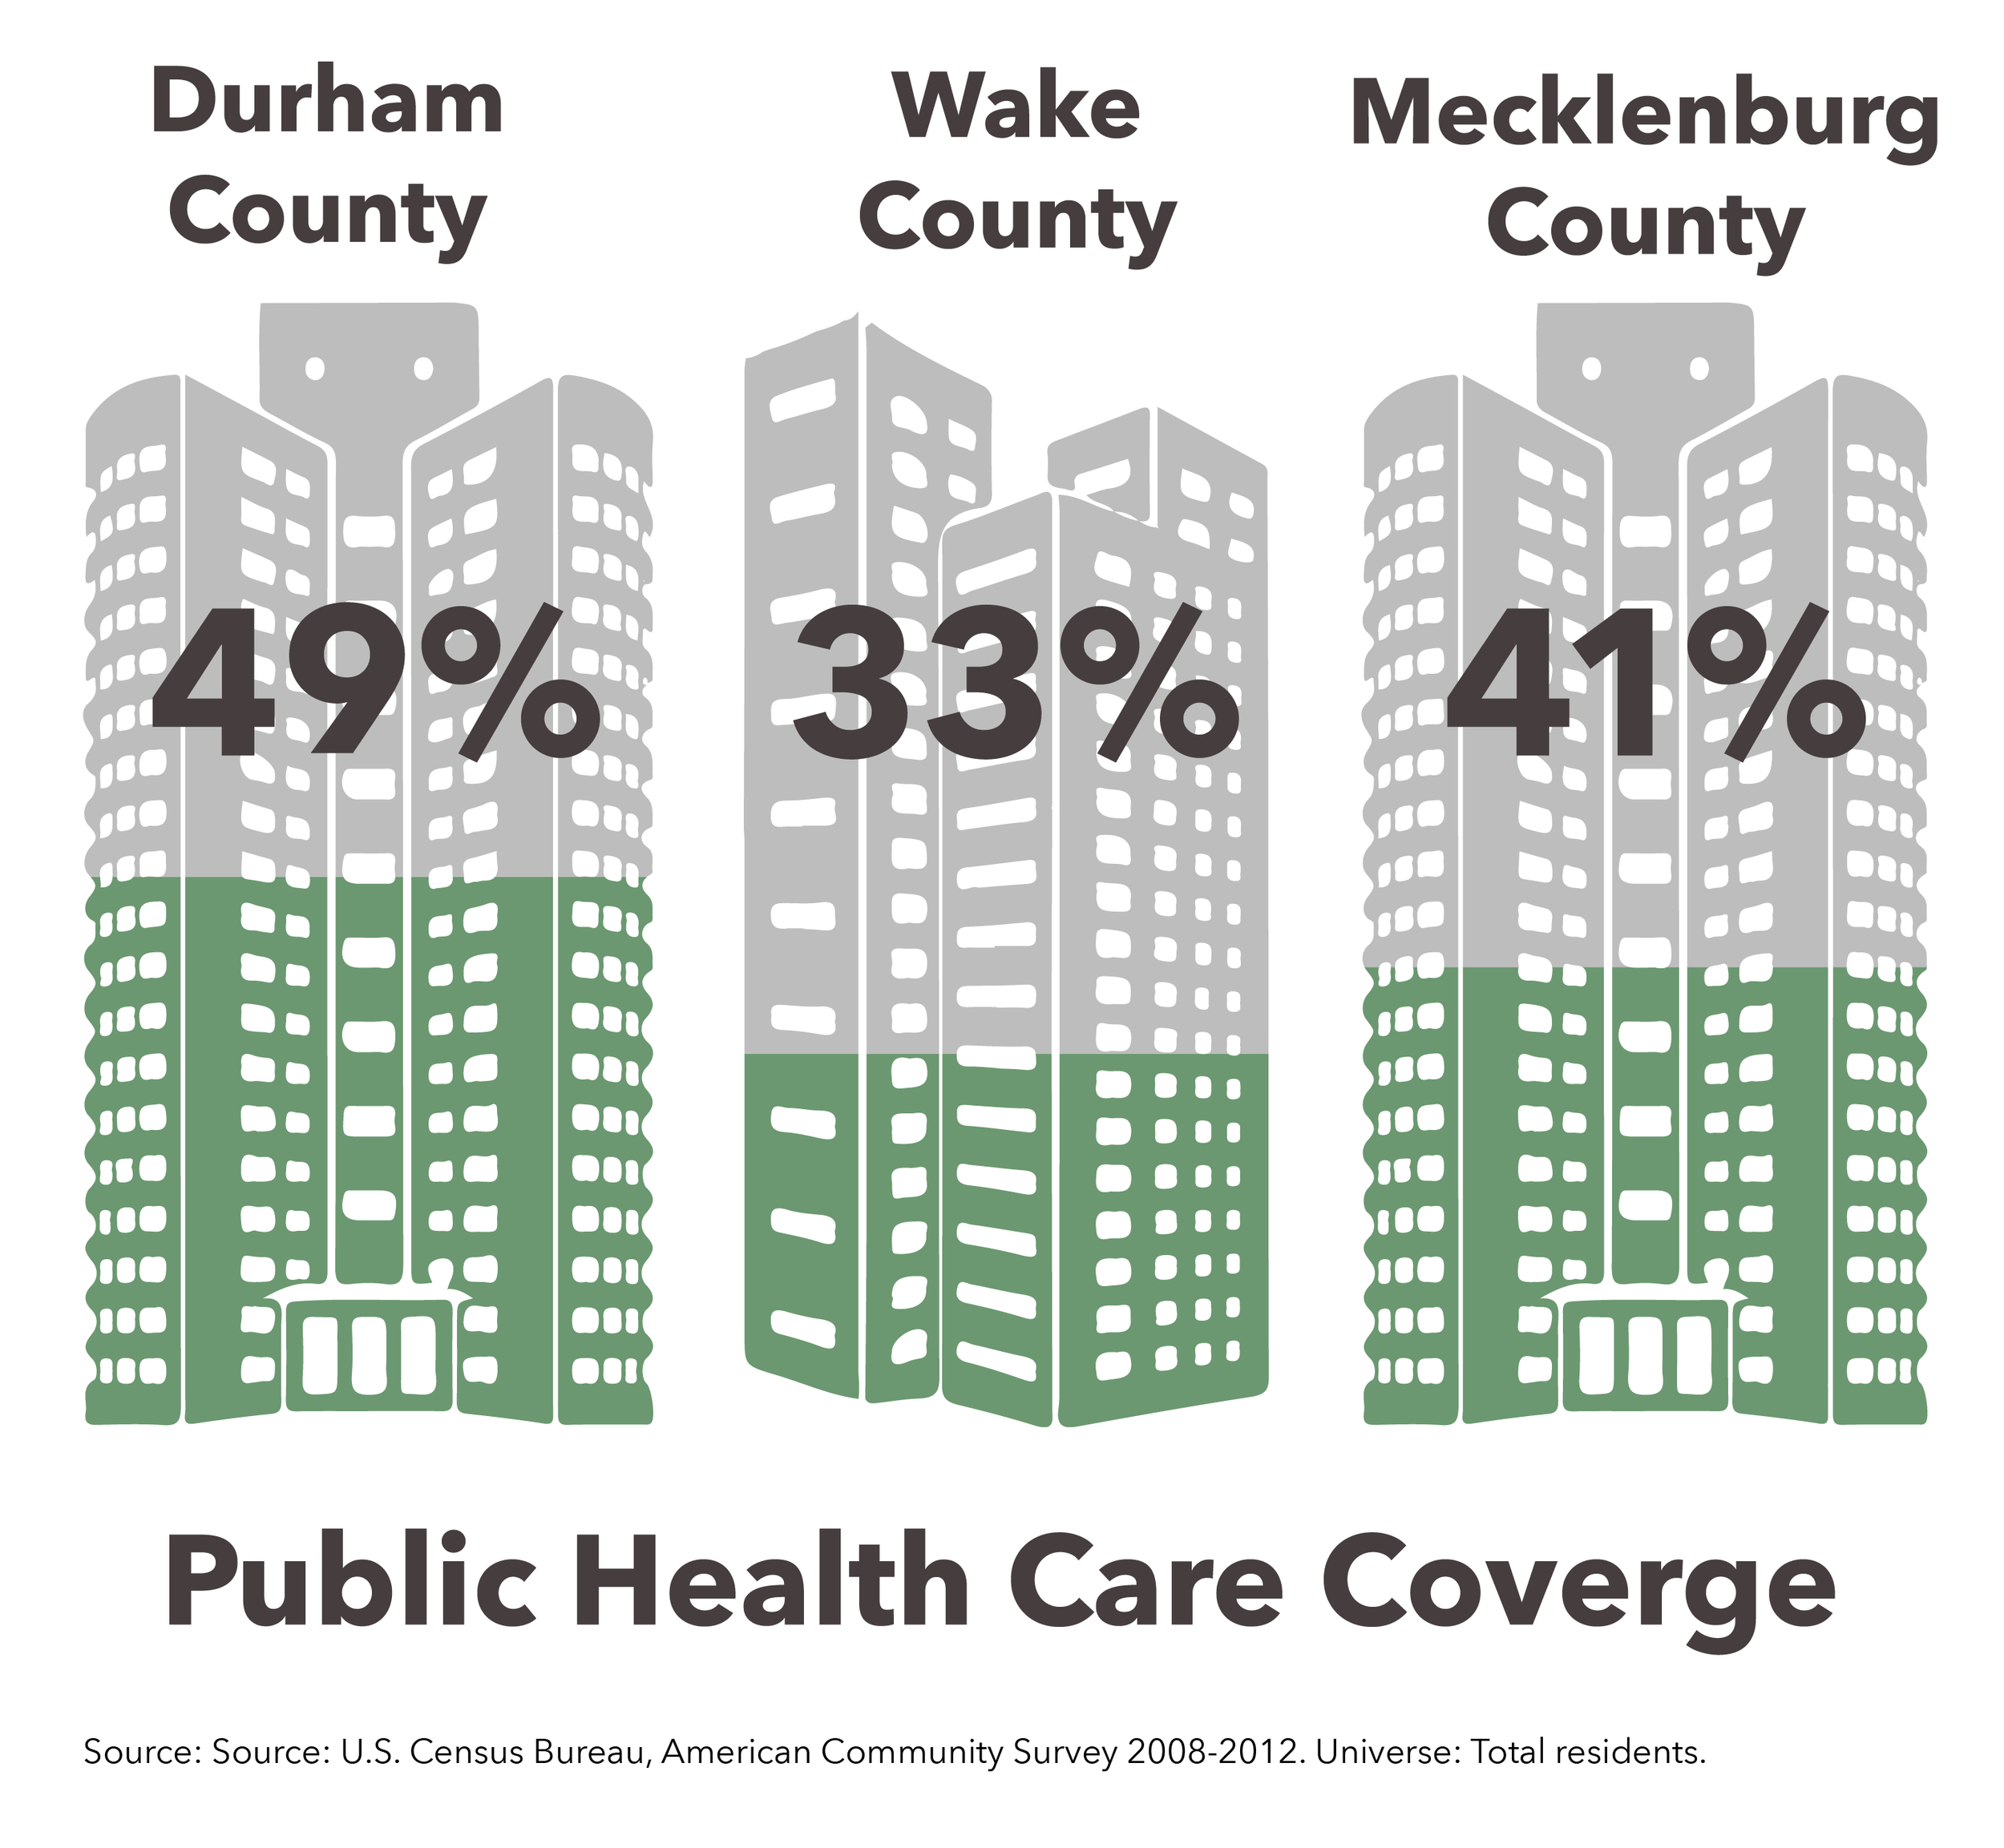 Public health insurance includes a range of programs: Medicare, Medicaid, CHIP, other state-specific plans, Department of Veterans Affairs and Indian Health Service plans all fall under this category. In Durham County, 48% of the population of distressed census tracts is covered by public health insurance. Of those with health insurance, 61% are covered by public health insurance. For  WAKE COUNTY'S DISTRESSED CENSUS TRACTS THEY ARE 33% AND 42%, RESPECTIVELY,  and in  MECKLENBURG COUNTY'S DISTRESSED CENSUS TRACTS THOSE SAME FIGURES ARE 41% AND 55% .